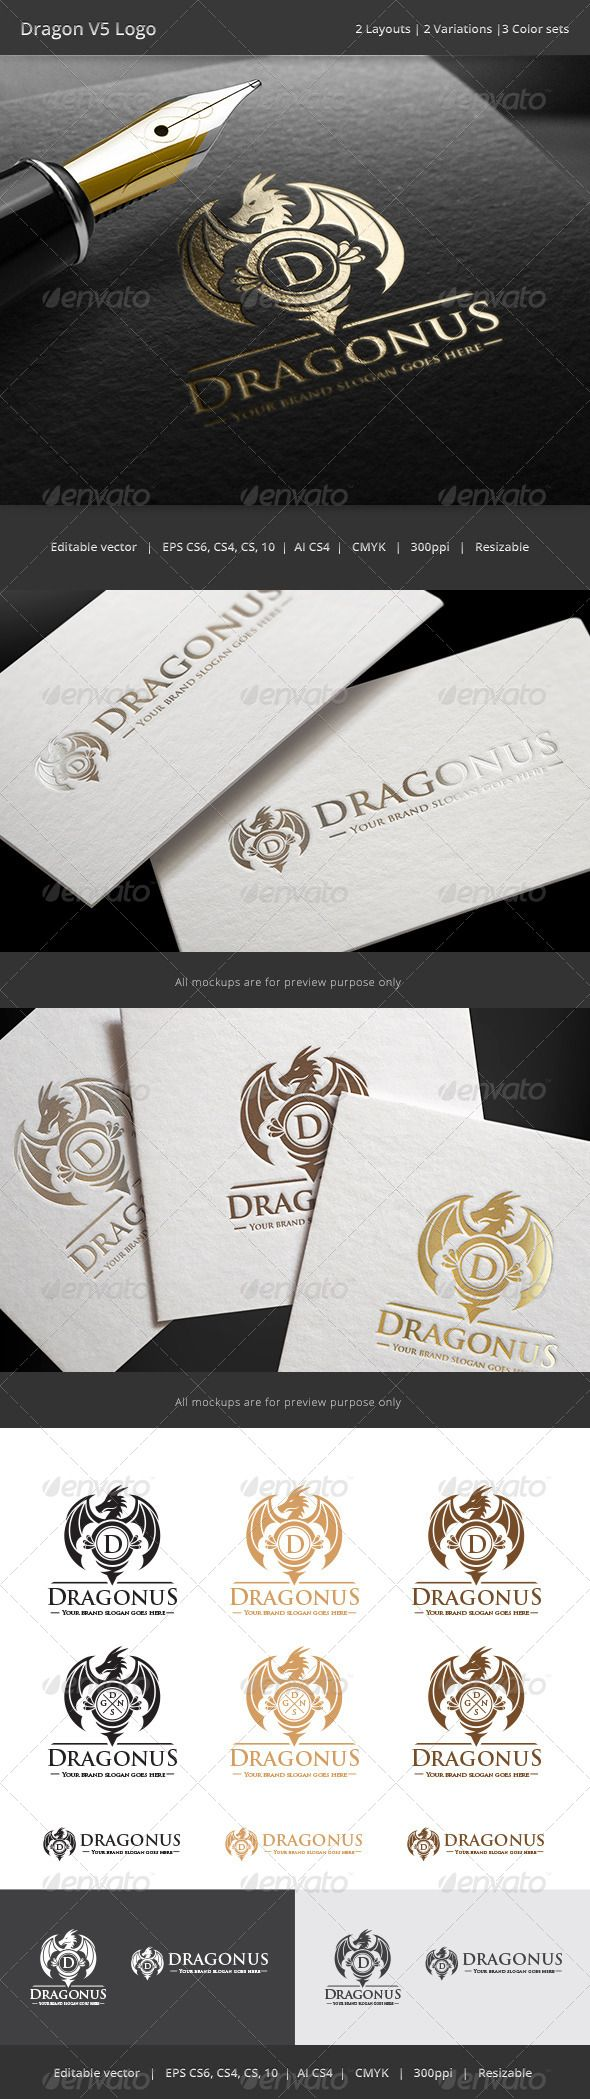 Below are two different file formats of the superman logo in a beveled - Dragon Letter V5 Logo